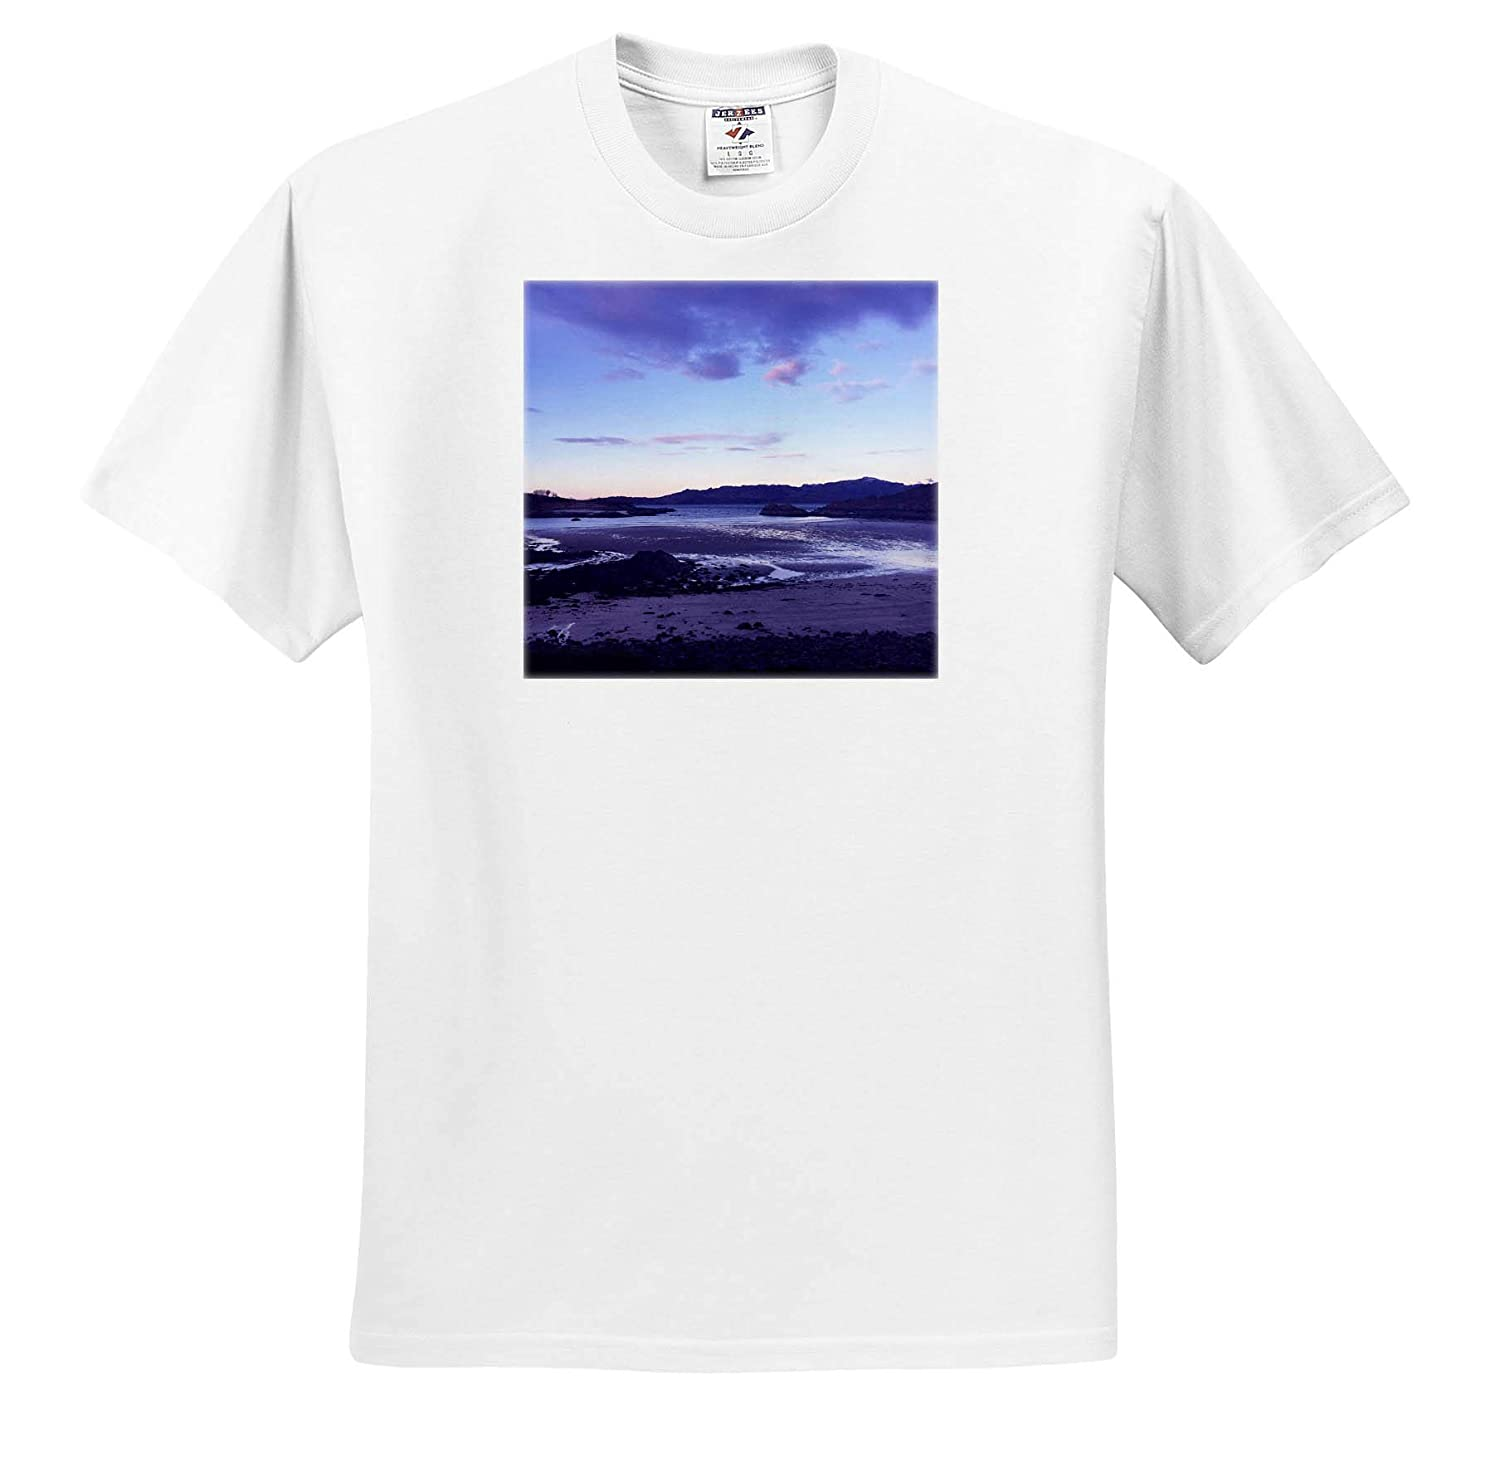 Sunset View at Loch Eil 3dRose Made in The Highlands T-Shirts Loch Eil Photograph Highlands of Scotland